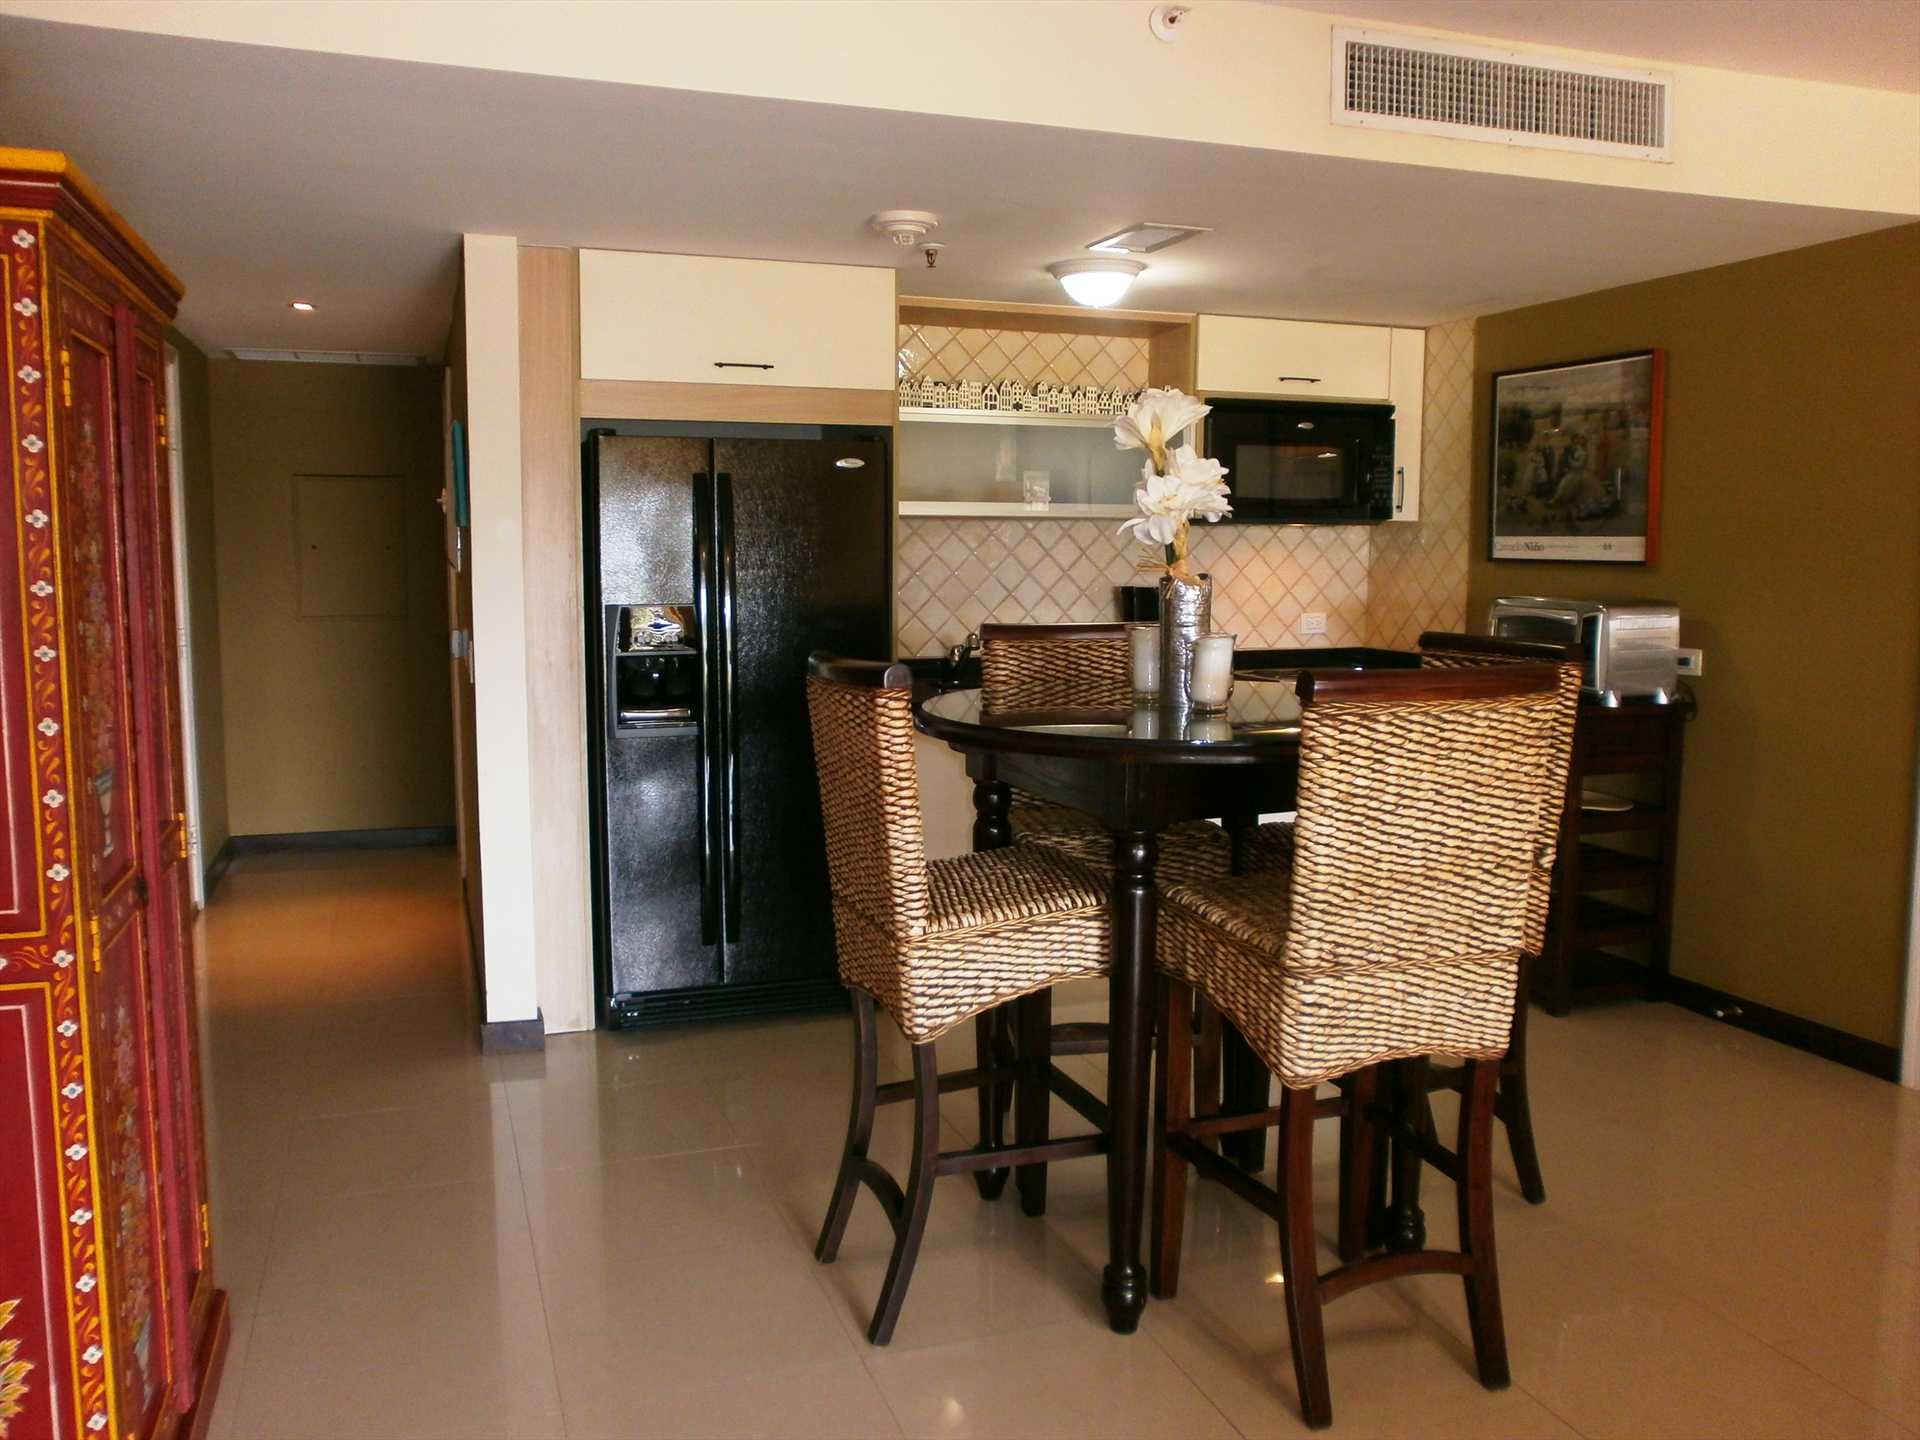 Fully equipped kitchenette and 4-seat dining table in the studio room